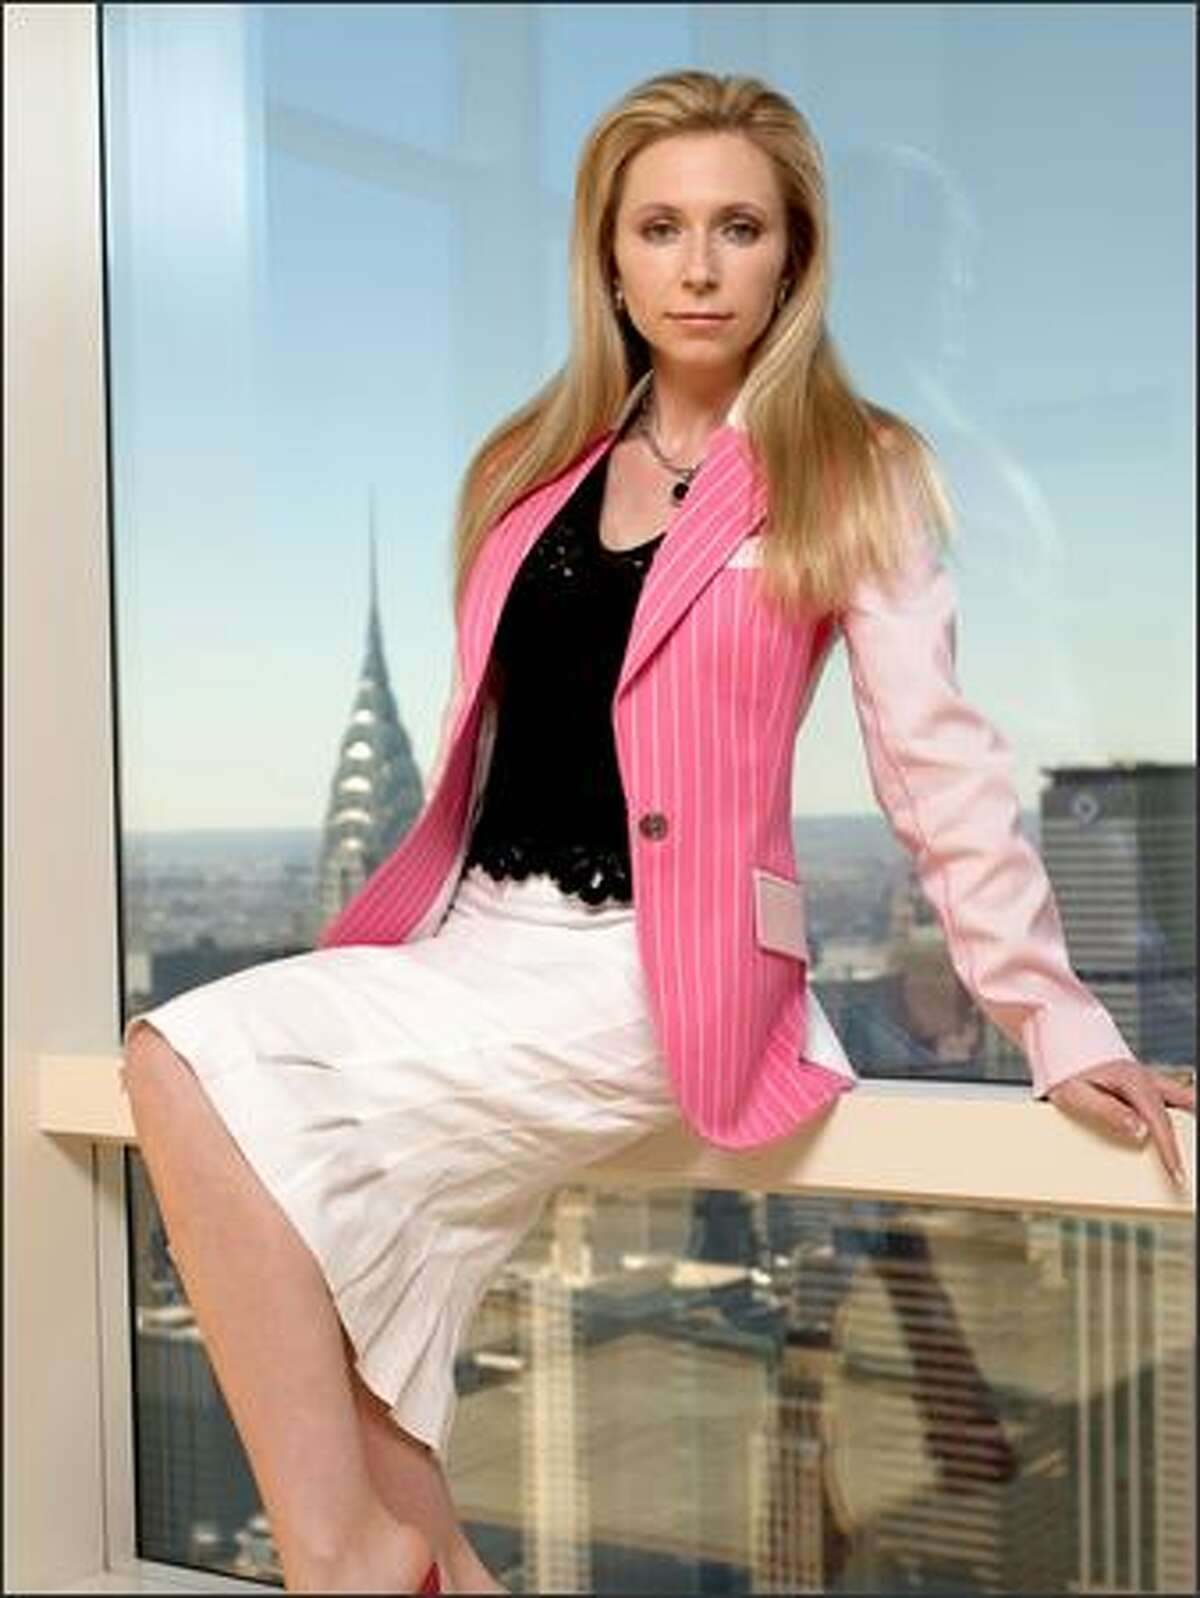 Alla Wartenberg, salon and spa chain owner, Las Vegas, Nev.: Alla, 31, a self-made multimillionaire, owns a chain of upscale Dolphin Court Salons & Day Spas in Las Vegas. She also builds million-dollar custom mansions for resale and invests avidly in commercial and residential land. Born and raised in Kishinev, Moldavia, Alla moved to the United States with her parents in 1988 to fulfill the